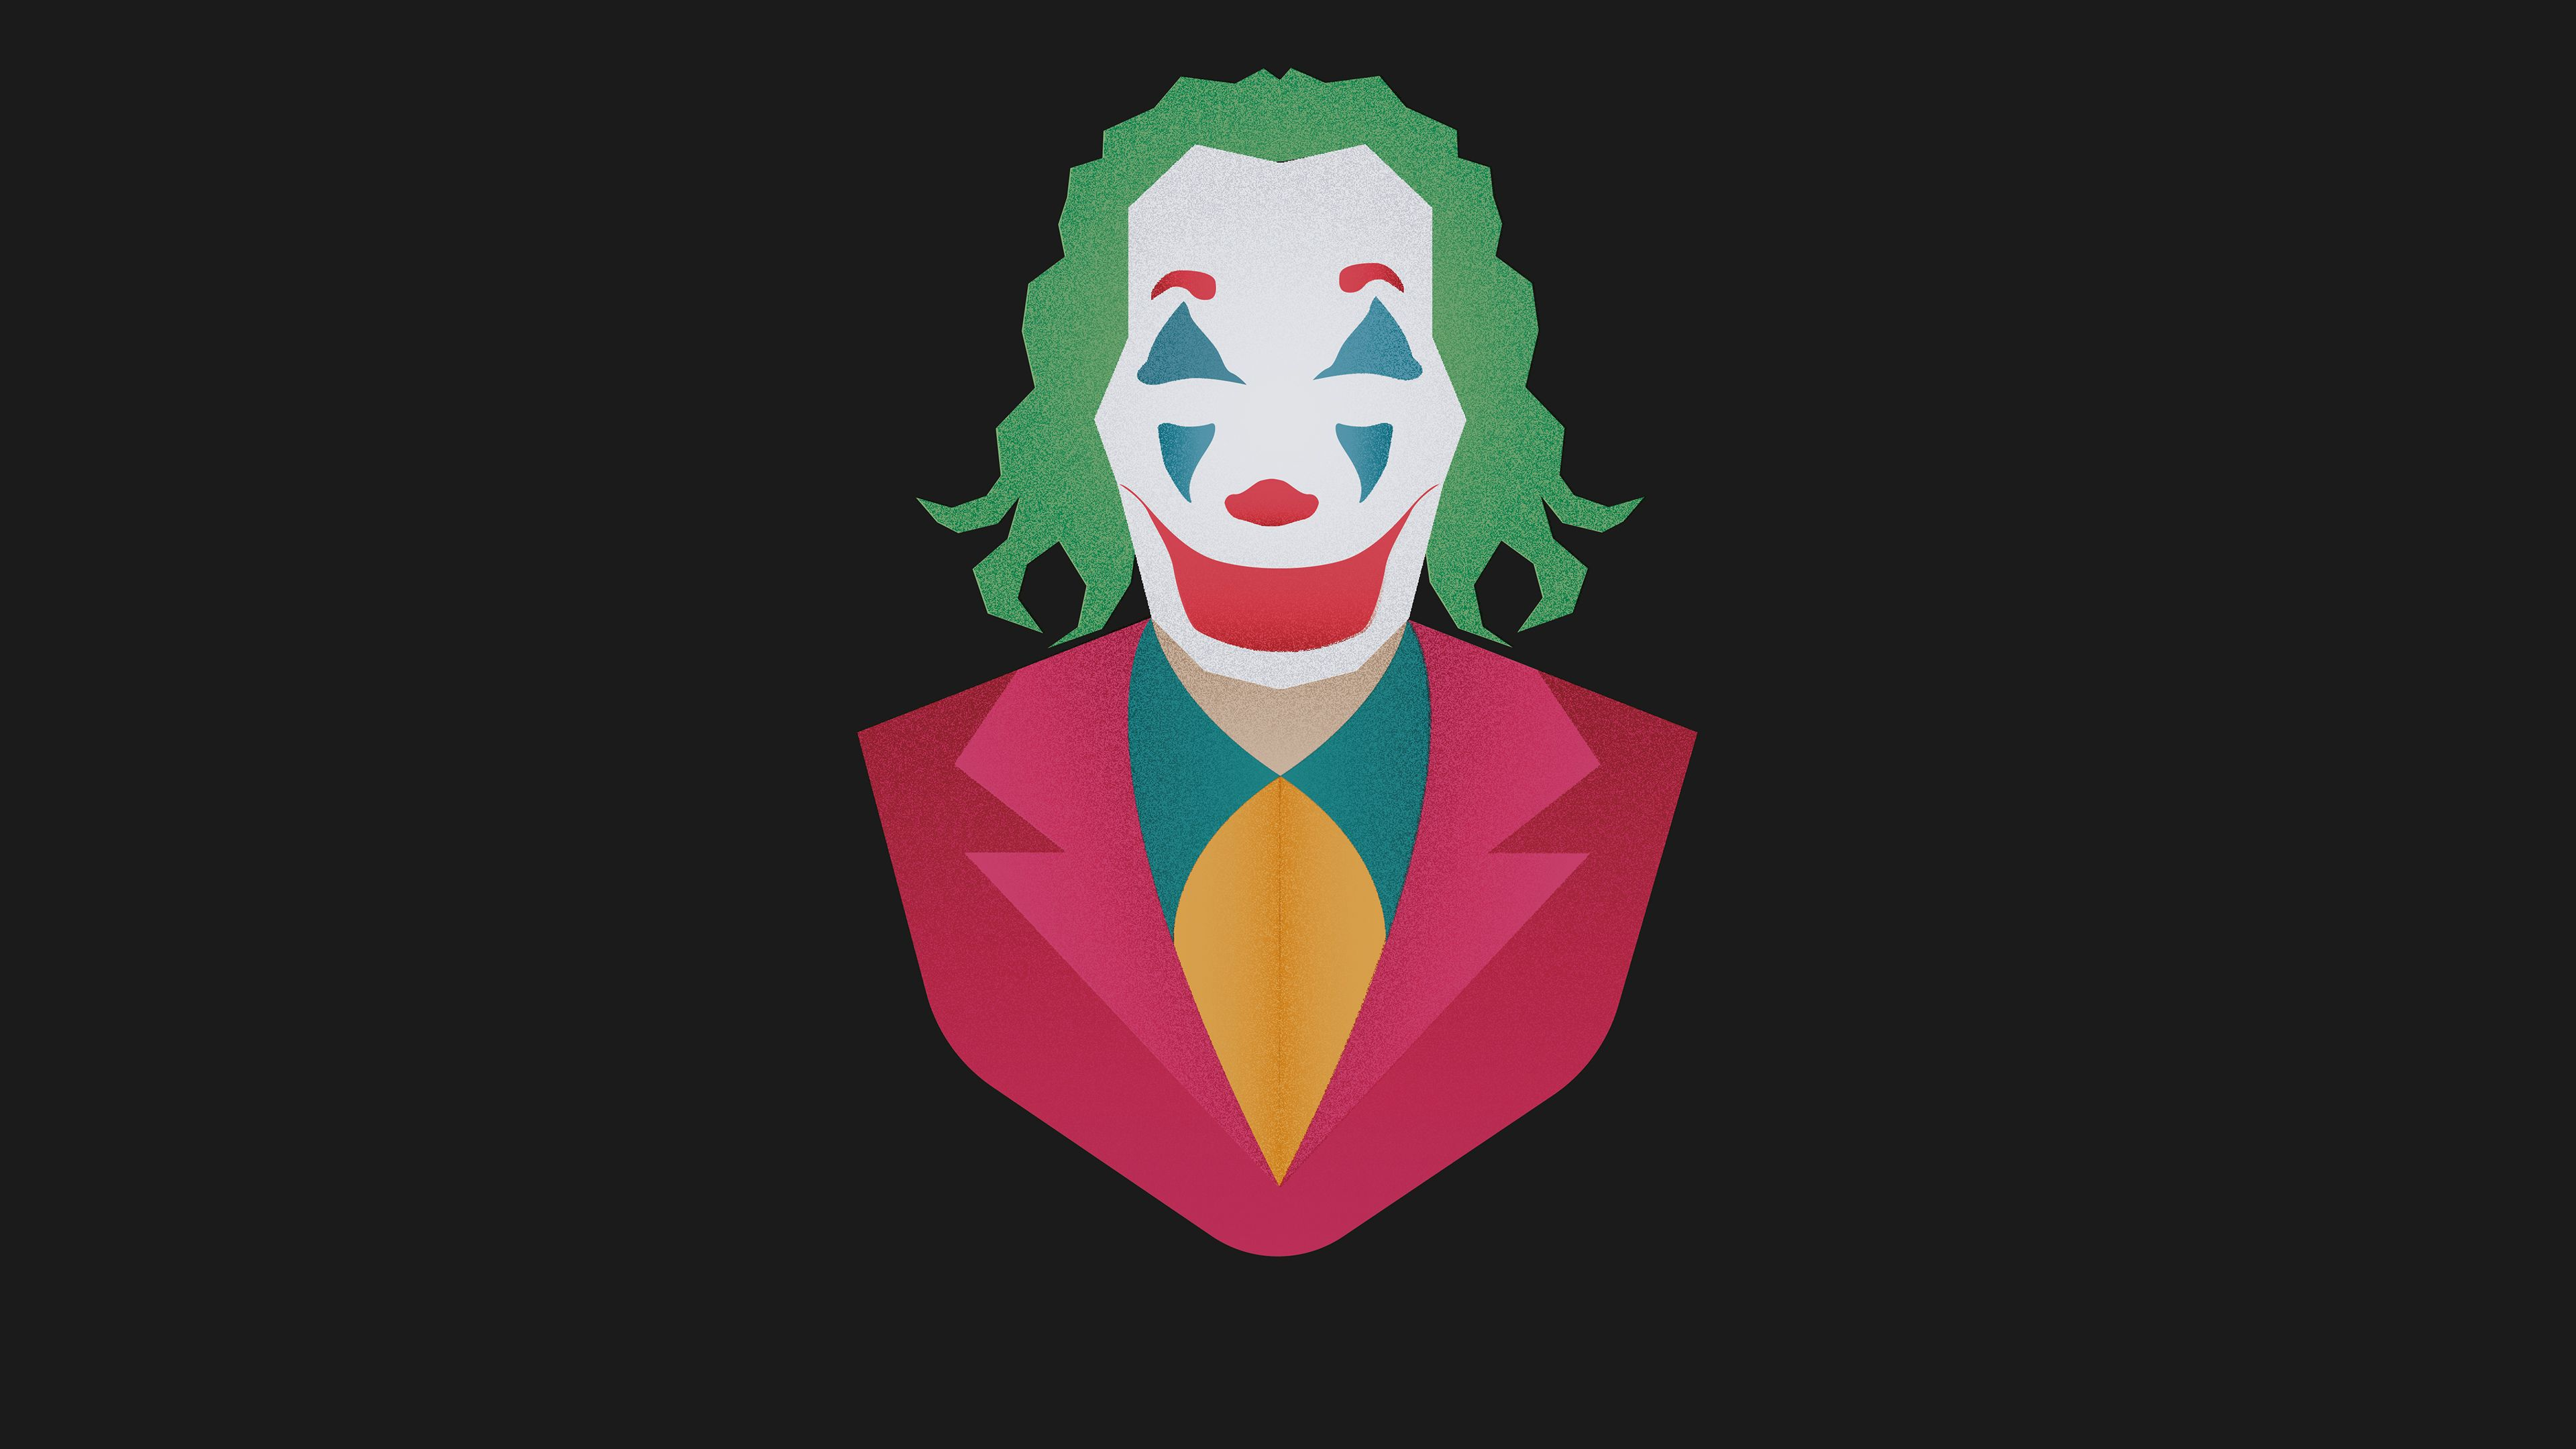 Wallpapers 4k Joker Movie Minimalism2 4k